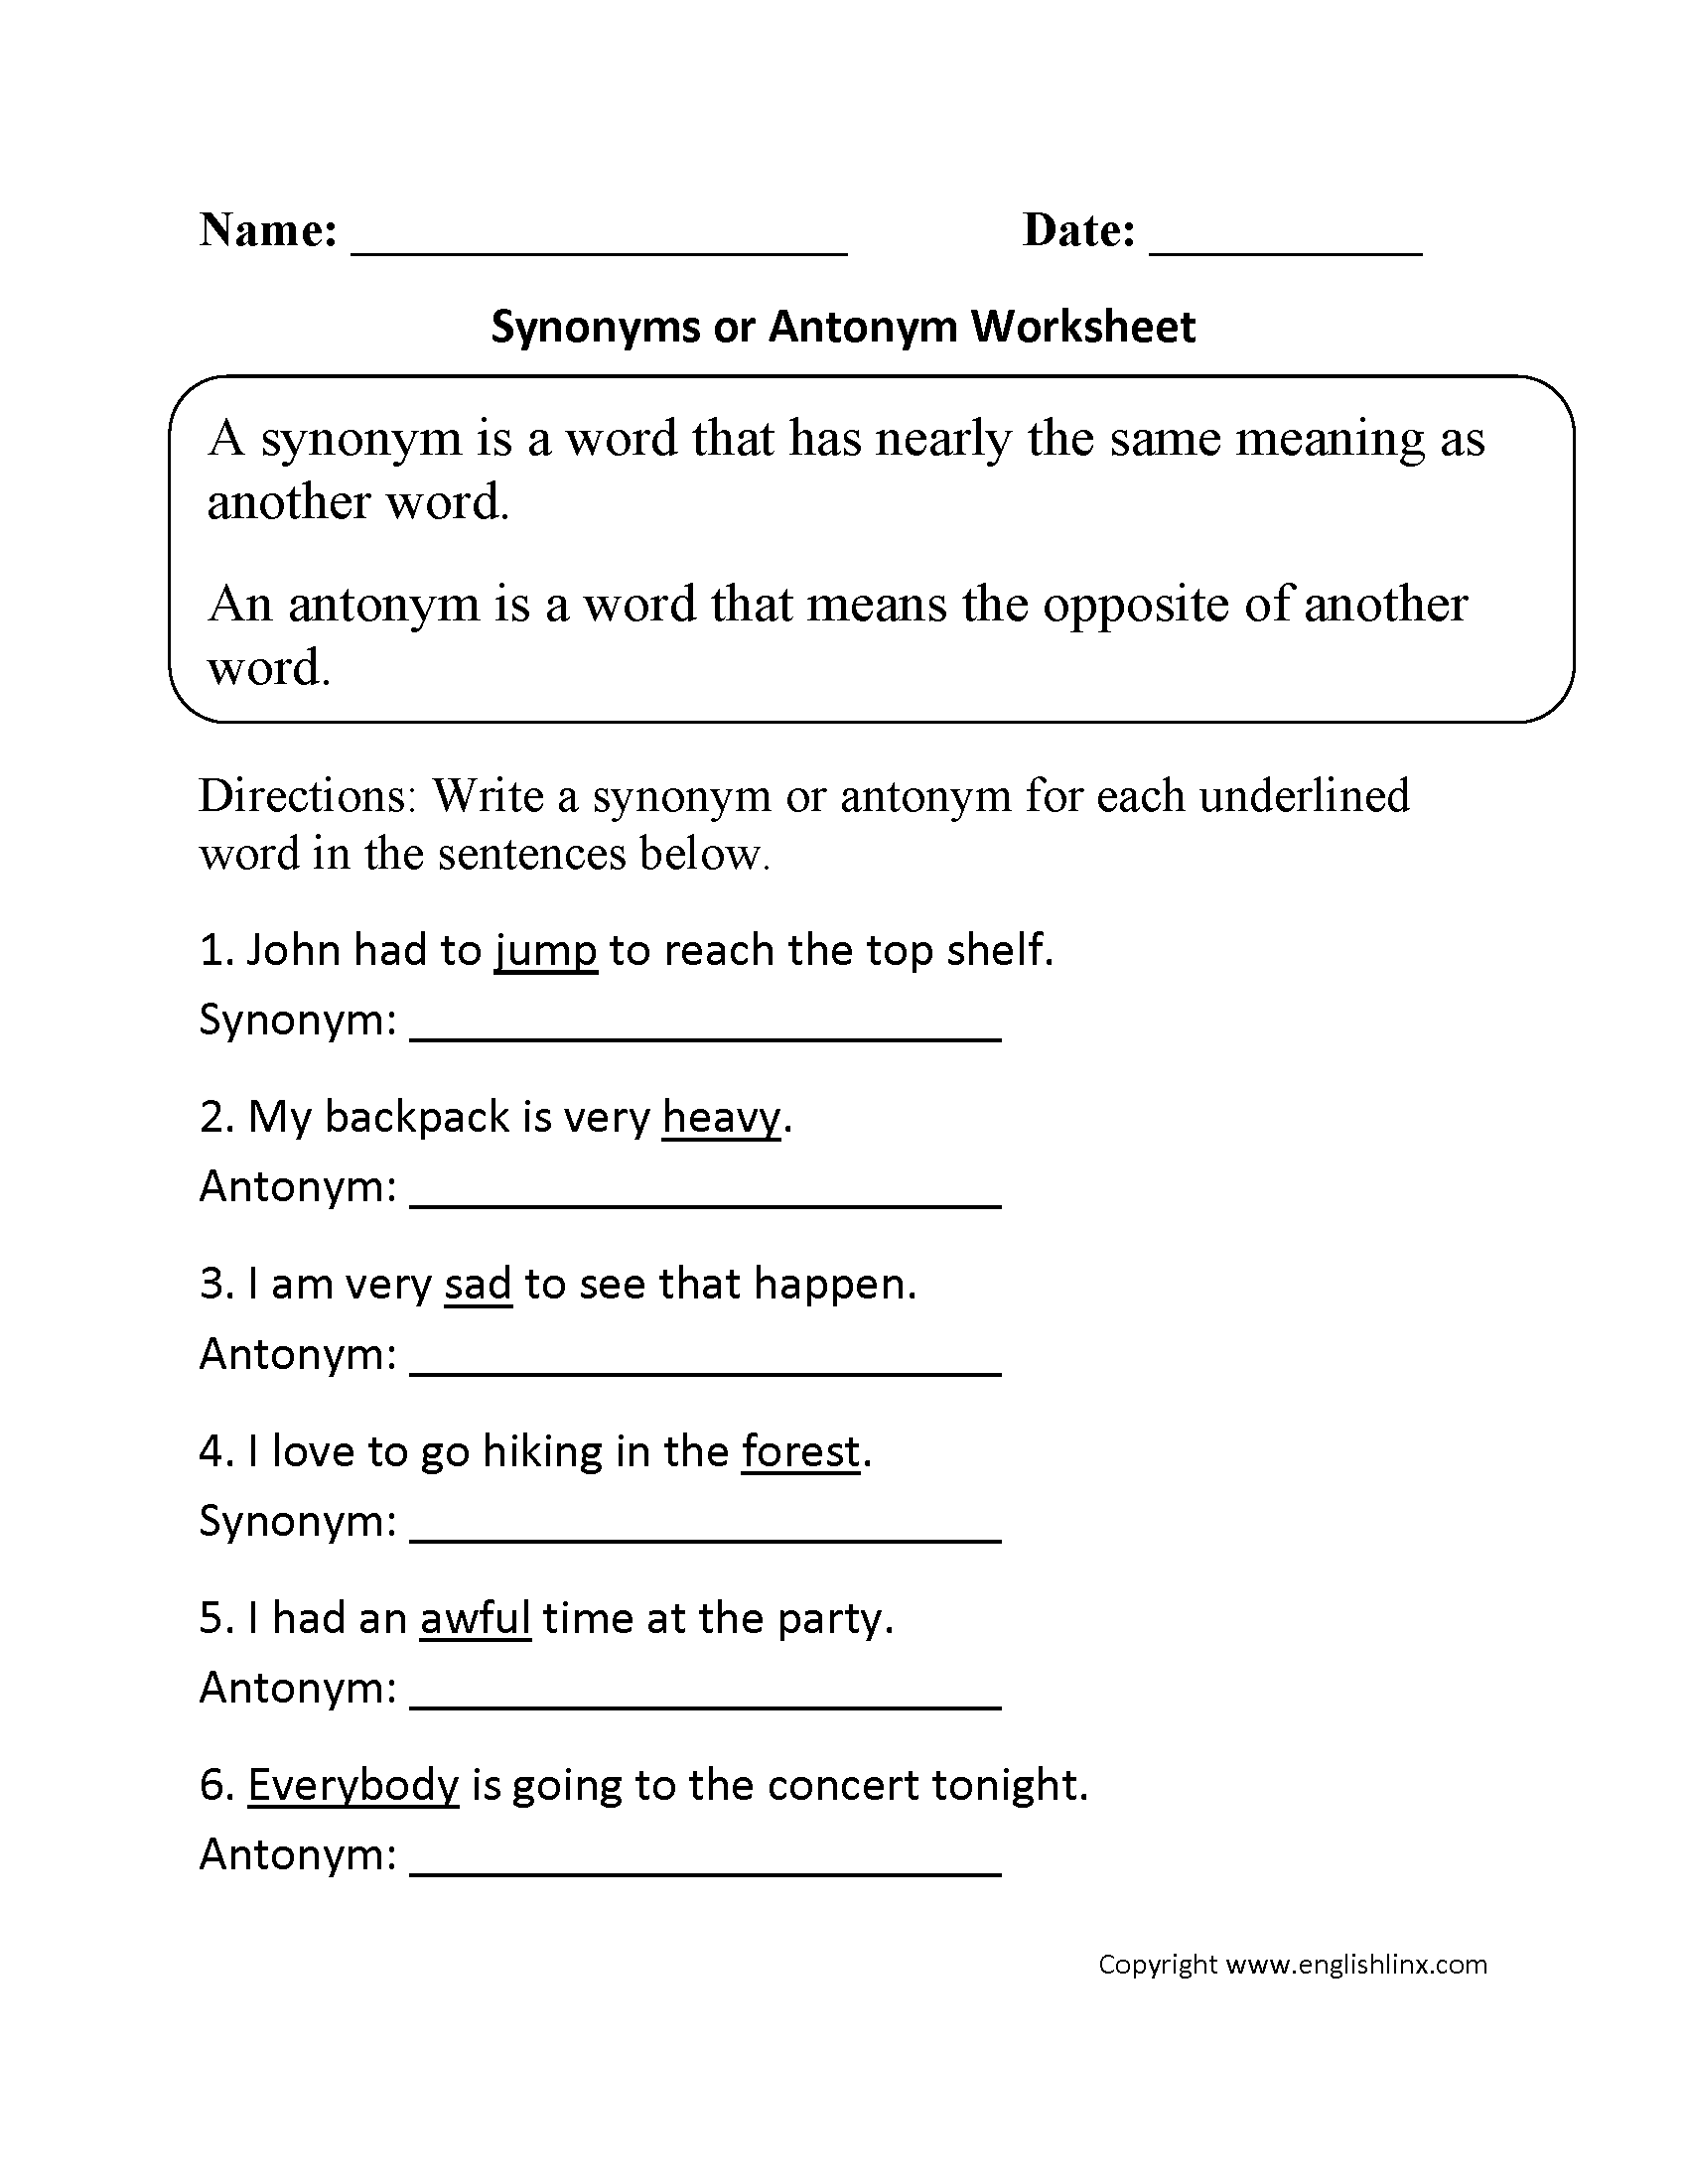 Worksheet Antonyms Synonym vocabulary worksheets synonym and antonym or worksheet